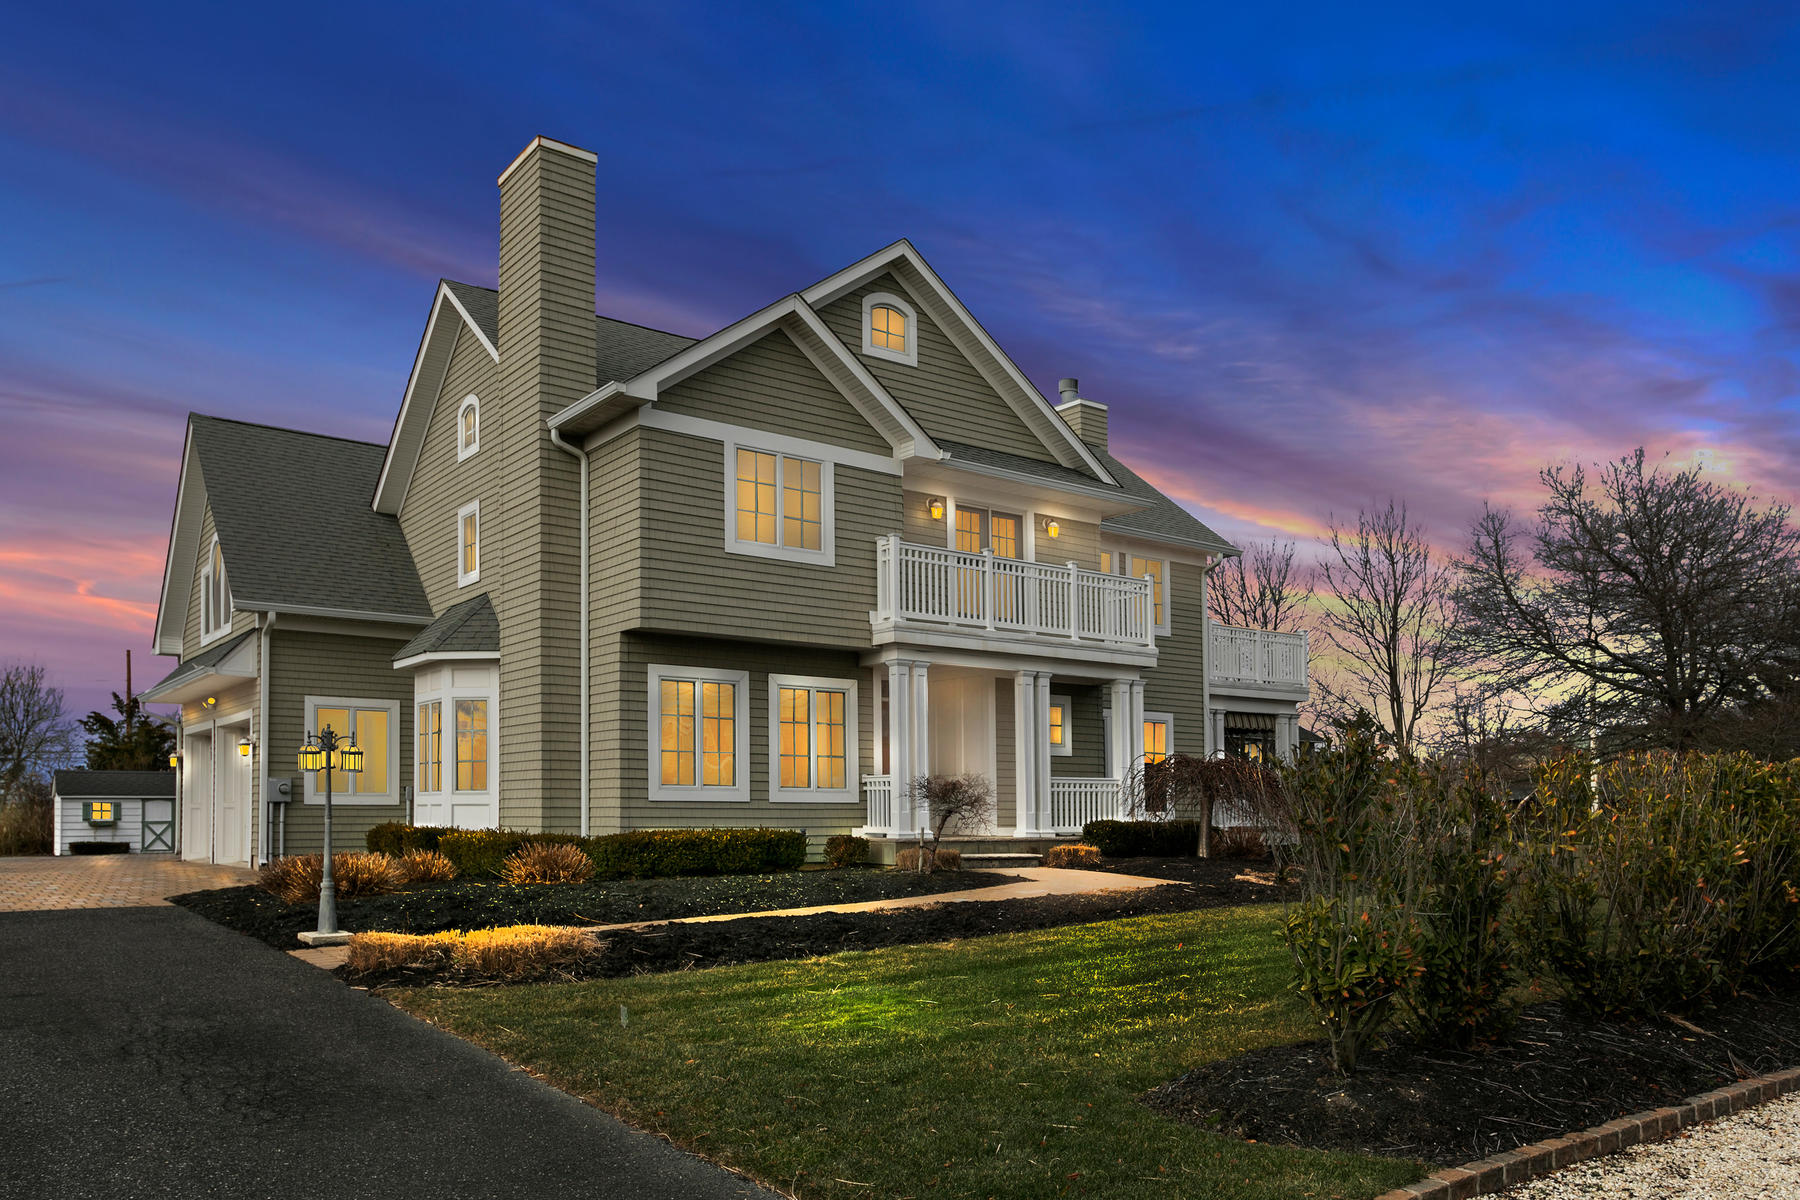 Single Family Home for Sale at Spectacular Luxury Home Situated In The Village Of Bay Head 854 Main Avenue, Bay Head, New Jersey, 08742 United States